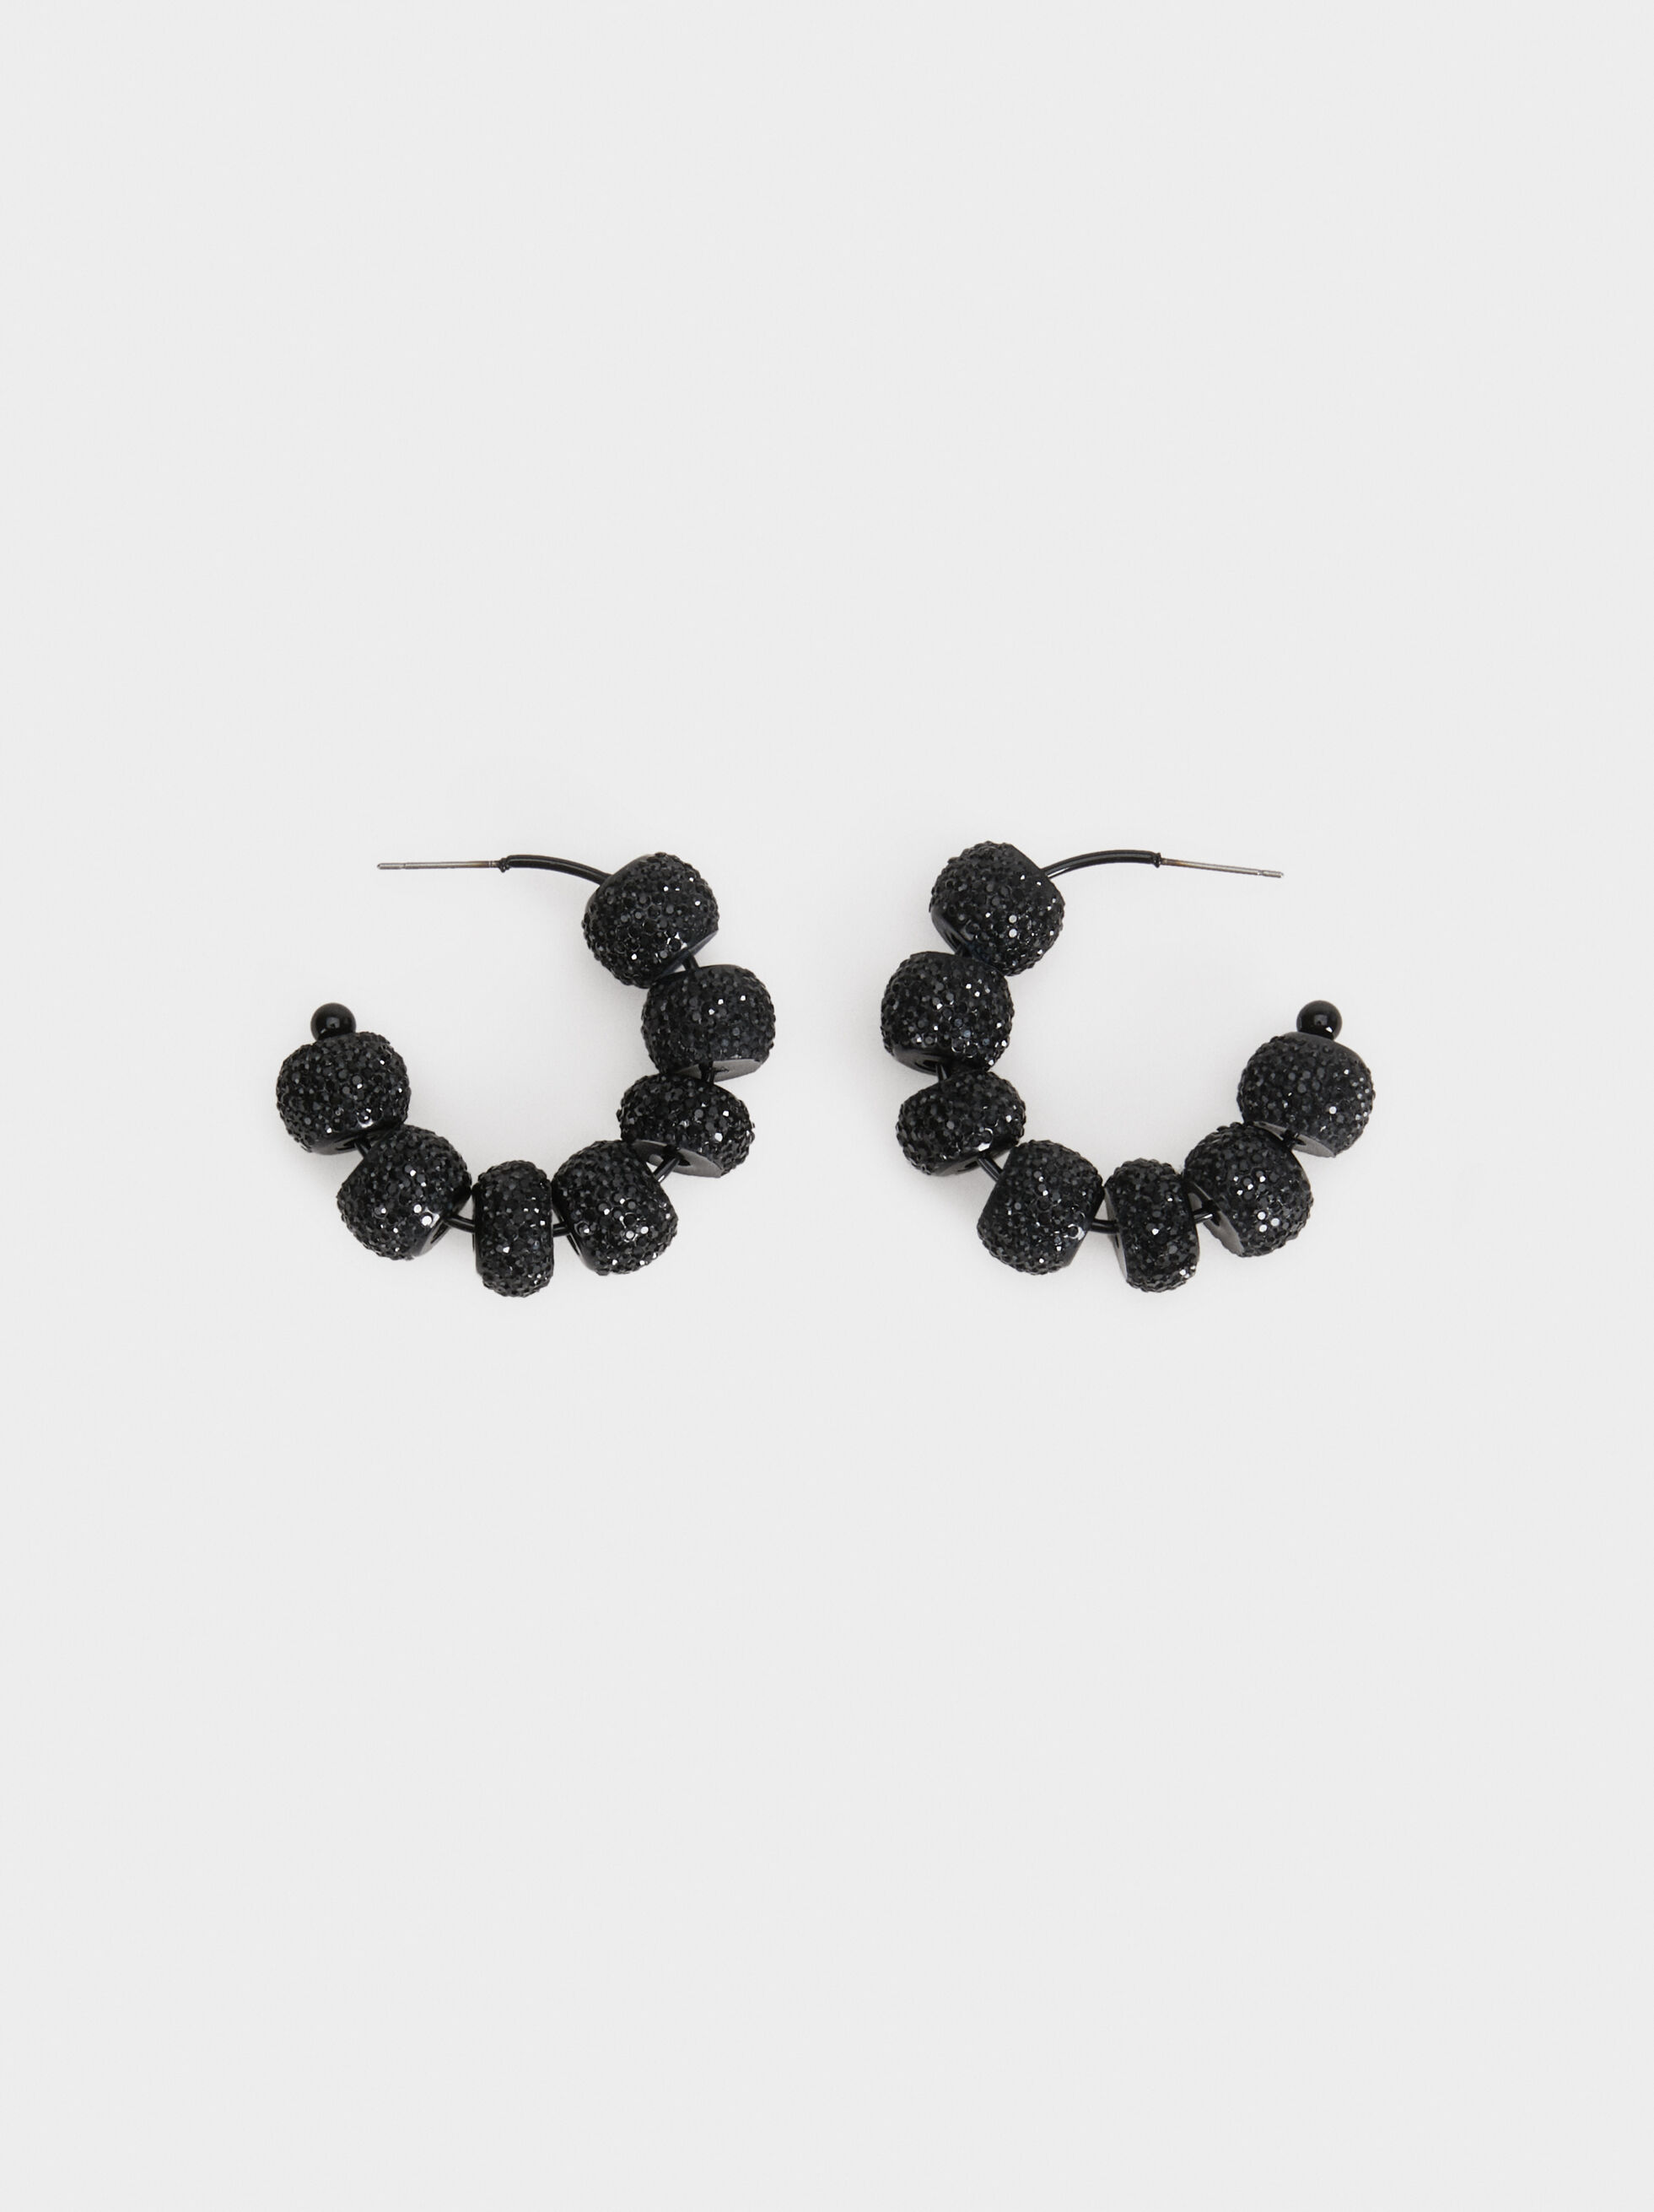 Star Dust Medium Rhinestone Hoop Earrings, Black, hi-res